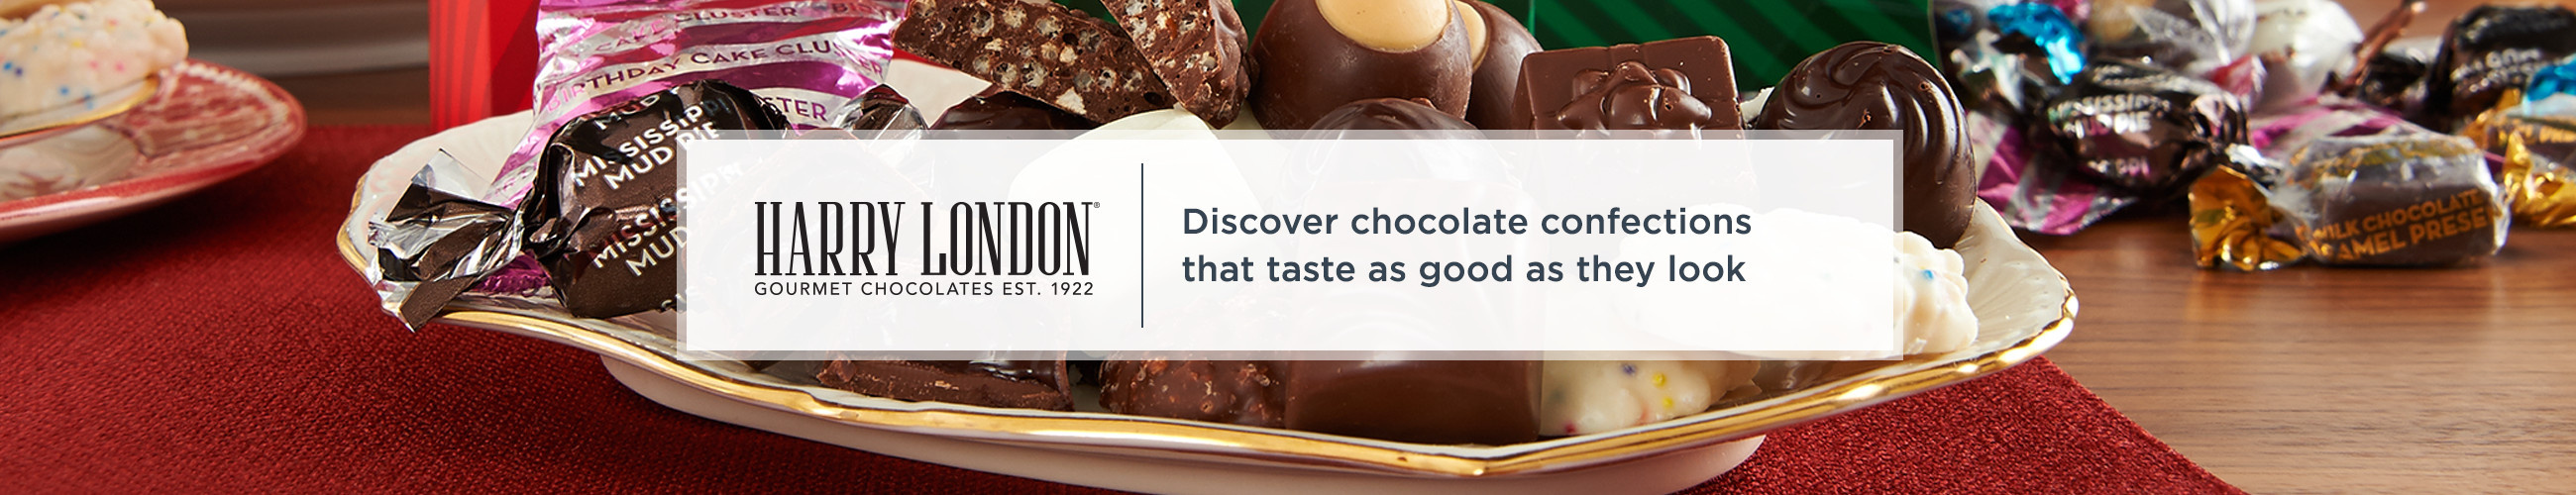 Harry London. Discover chocolate confections that taste as good as they look